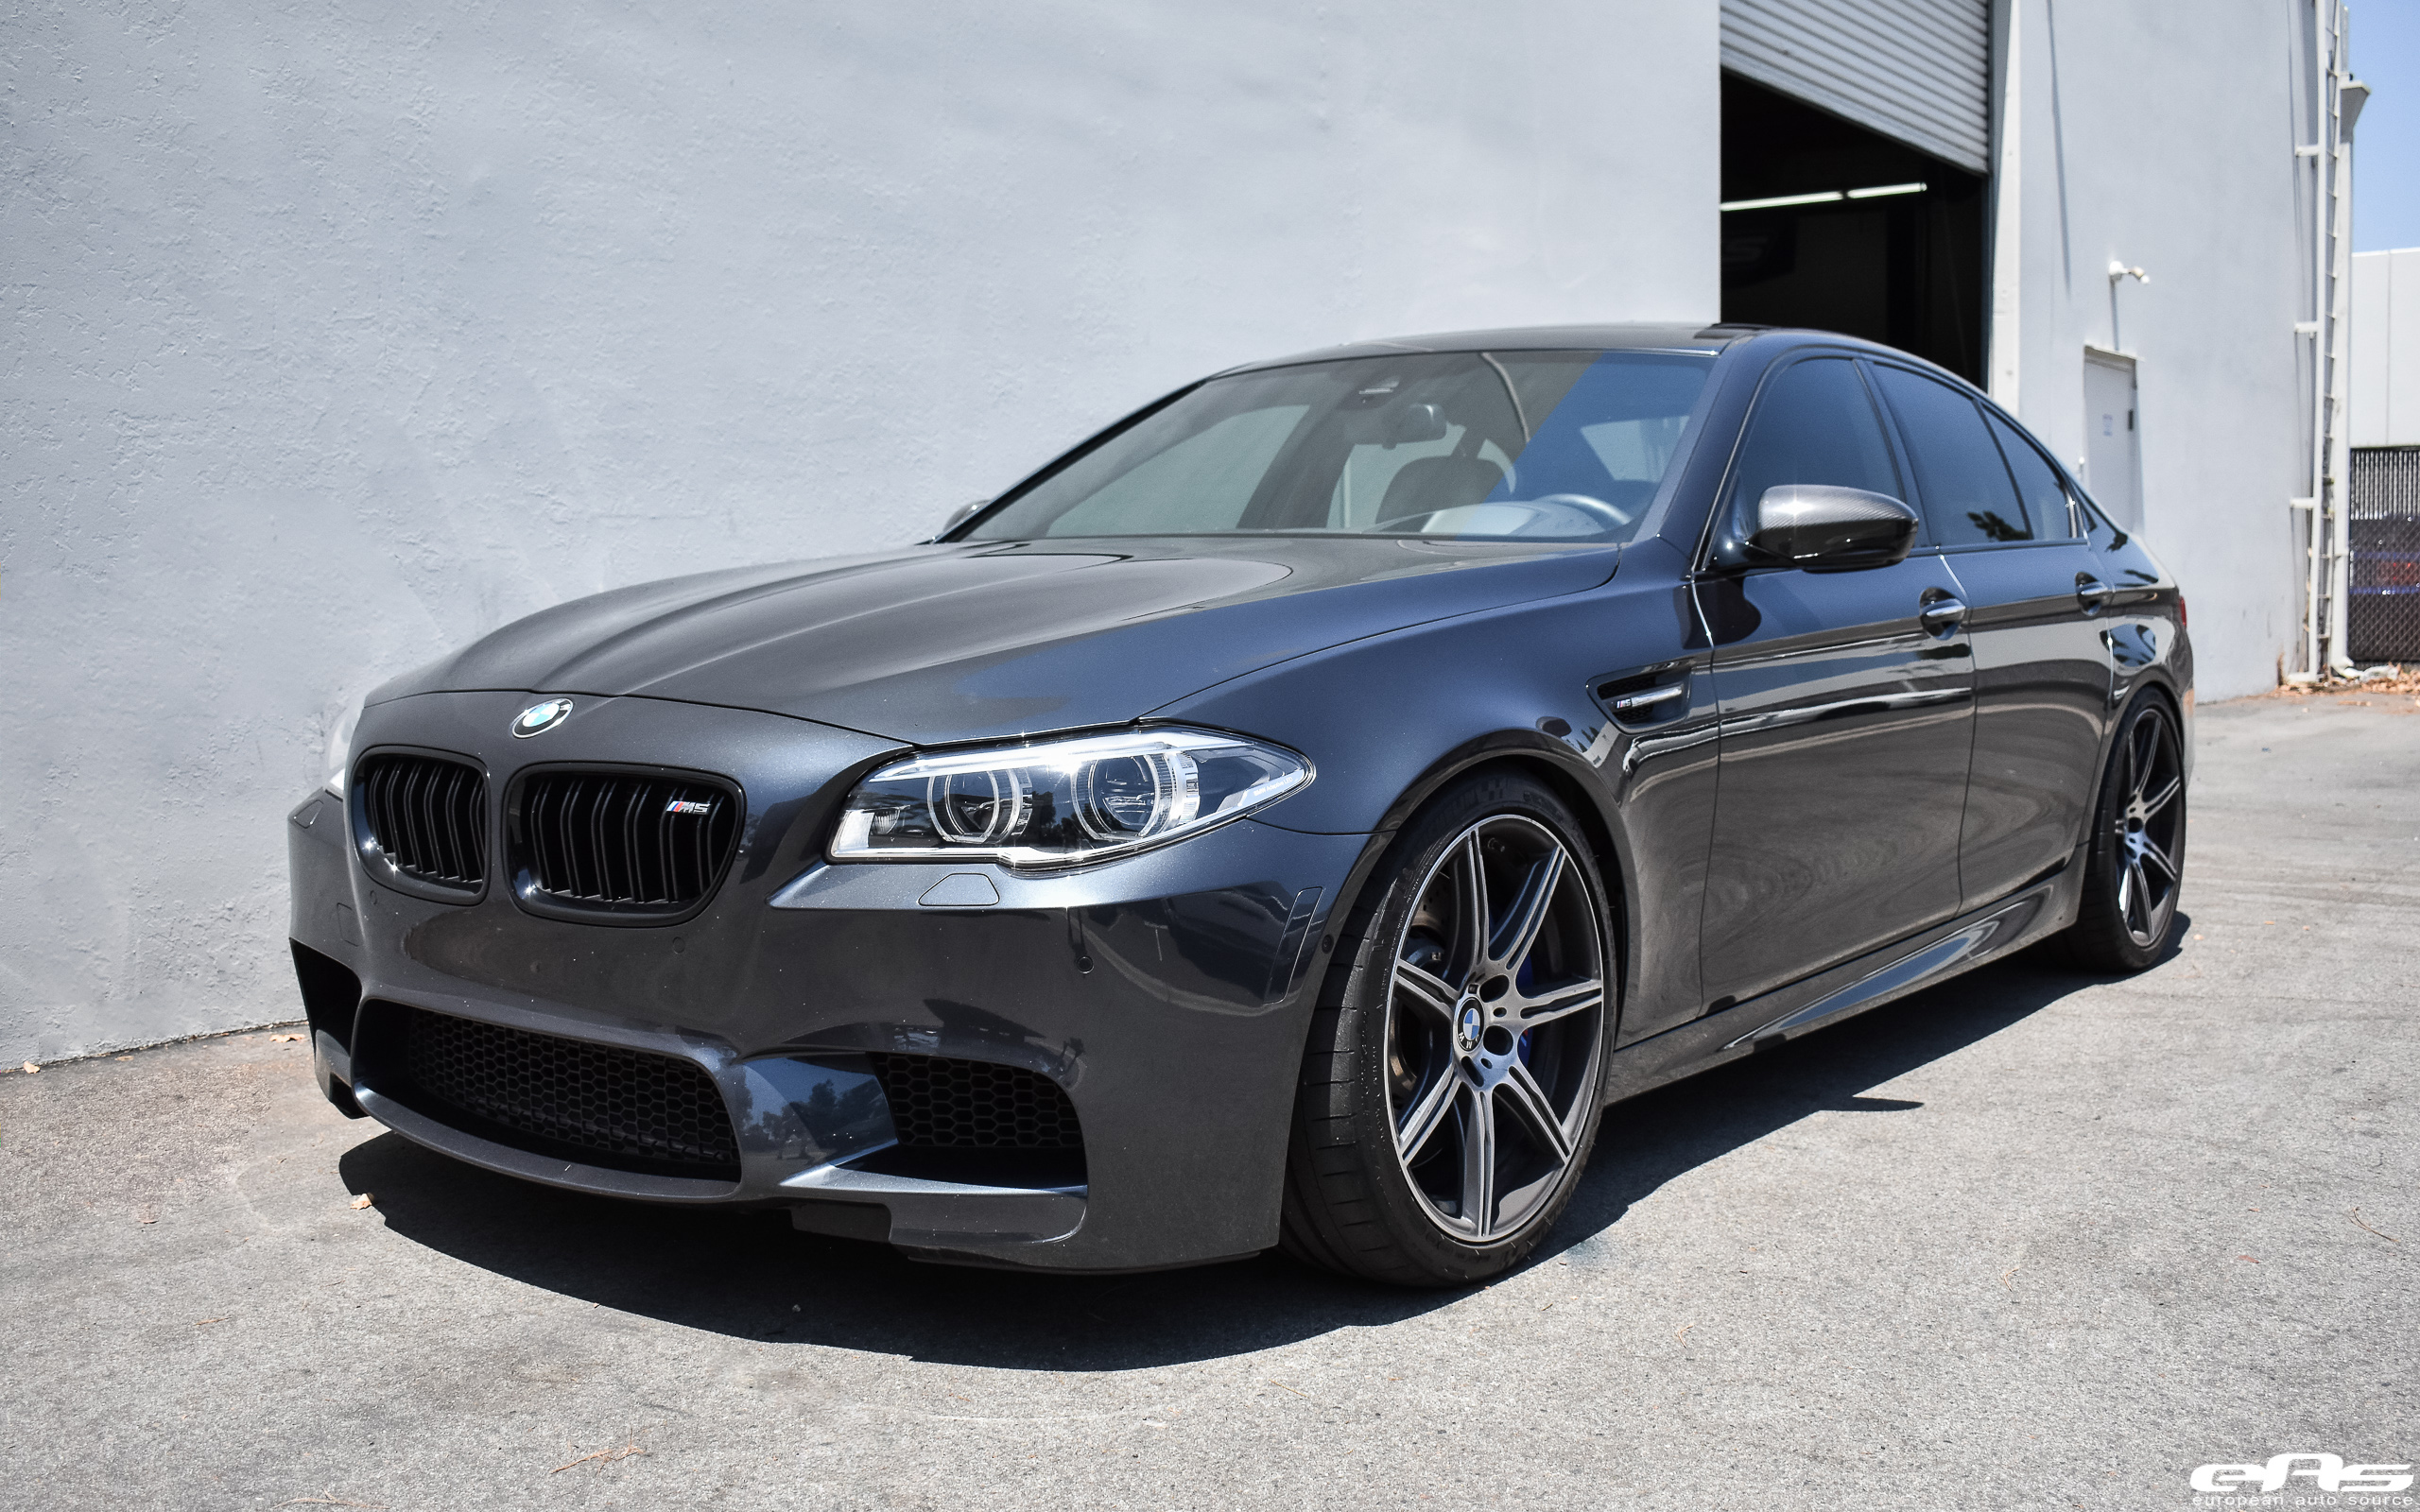 Singapore Gray Bmw M5 Gets An Eisenmann Exhaust System Installed Autoscoops Nl